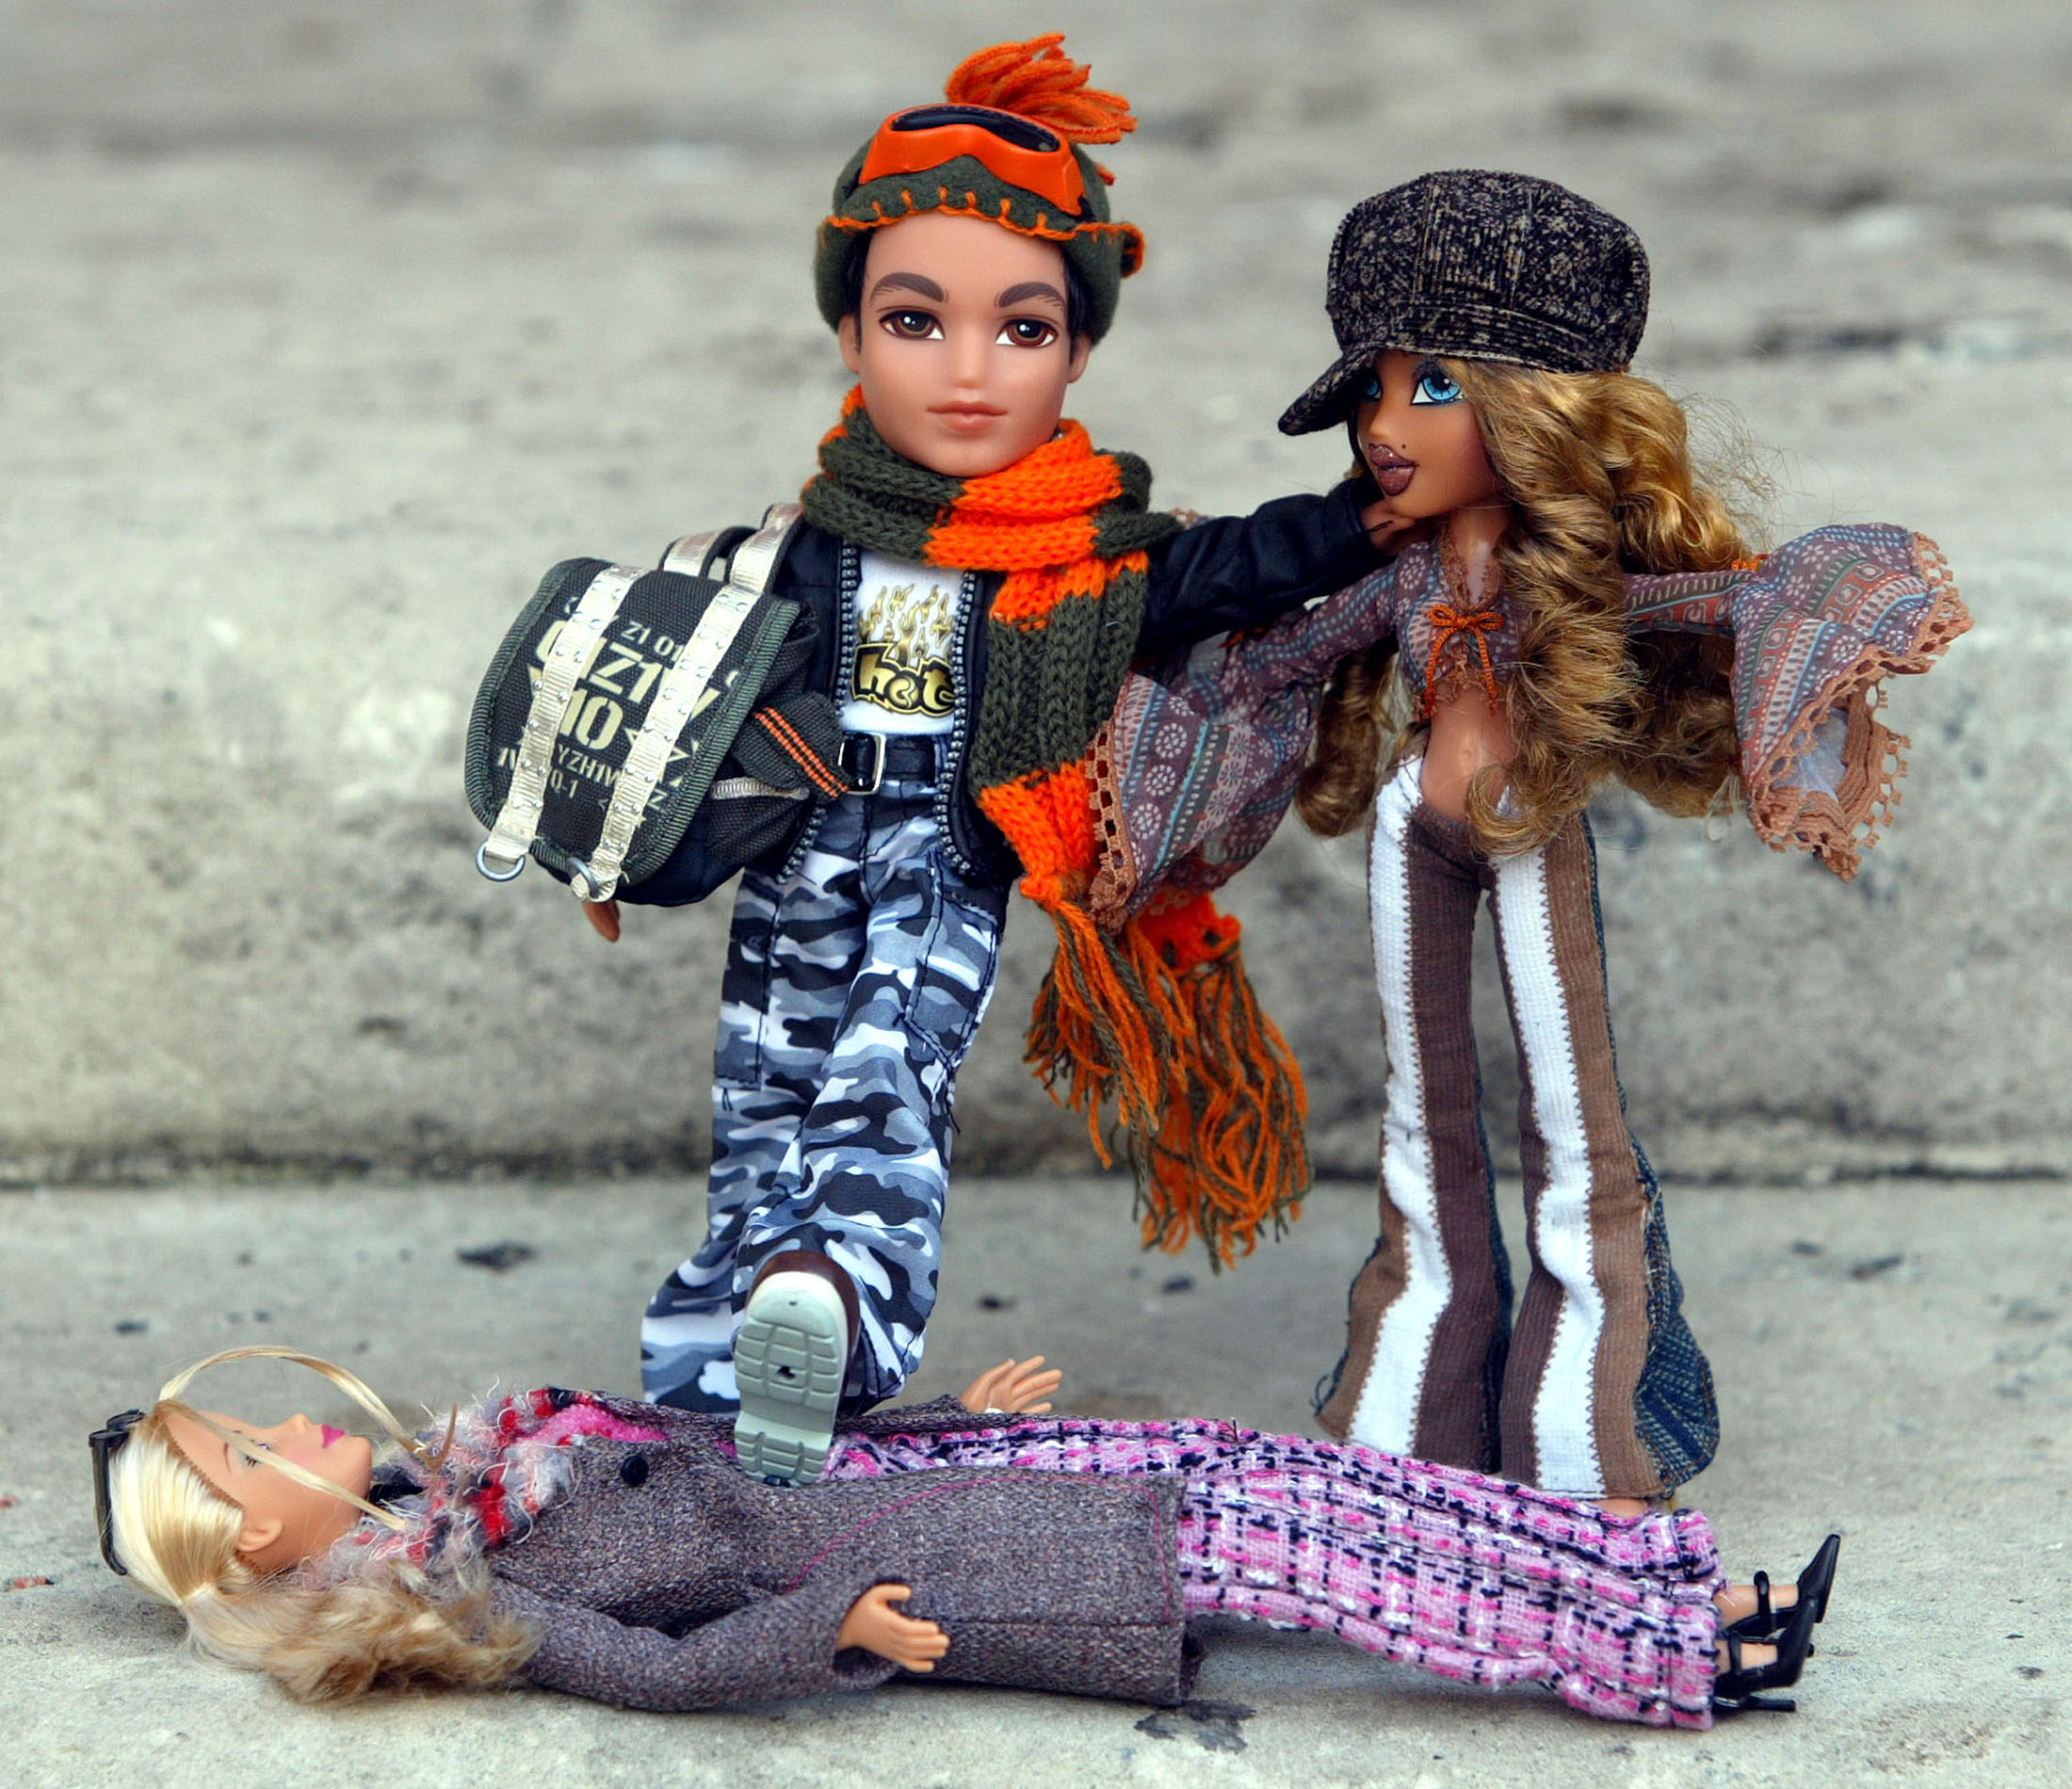 A Bratz doll (L) is seen with its foot on a Barbie Doll (lying down) and another Bratz doll (R) at the Dream Toys 2004 exhibition, which previews the year's top 10 toys and offers predictions from the Toy Retailers Association of the most popular toys for Christmas, in London, October 6, 2004. At the ripe old age of 45, Barbie was knocked off her perch on Wednesday by streetwise upstart Bratz in the Christmas battle of the dolls. REUTERS/Stephen Hird  SH/ASA/acm - RP5DRIEJWTAA